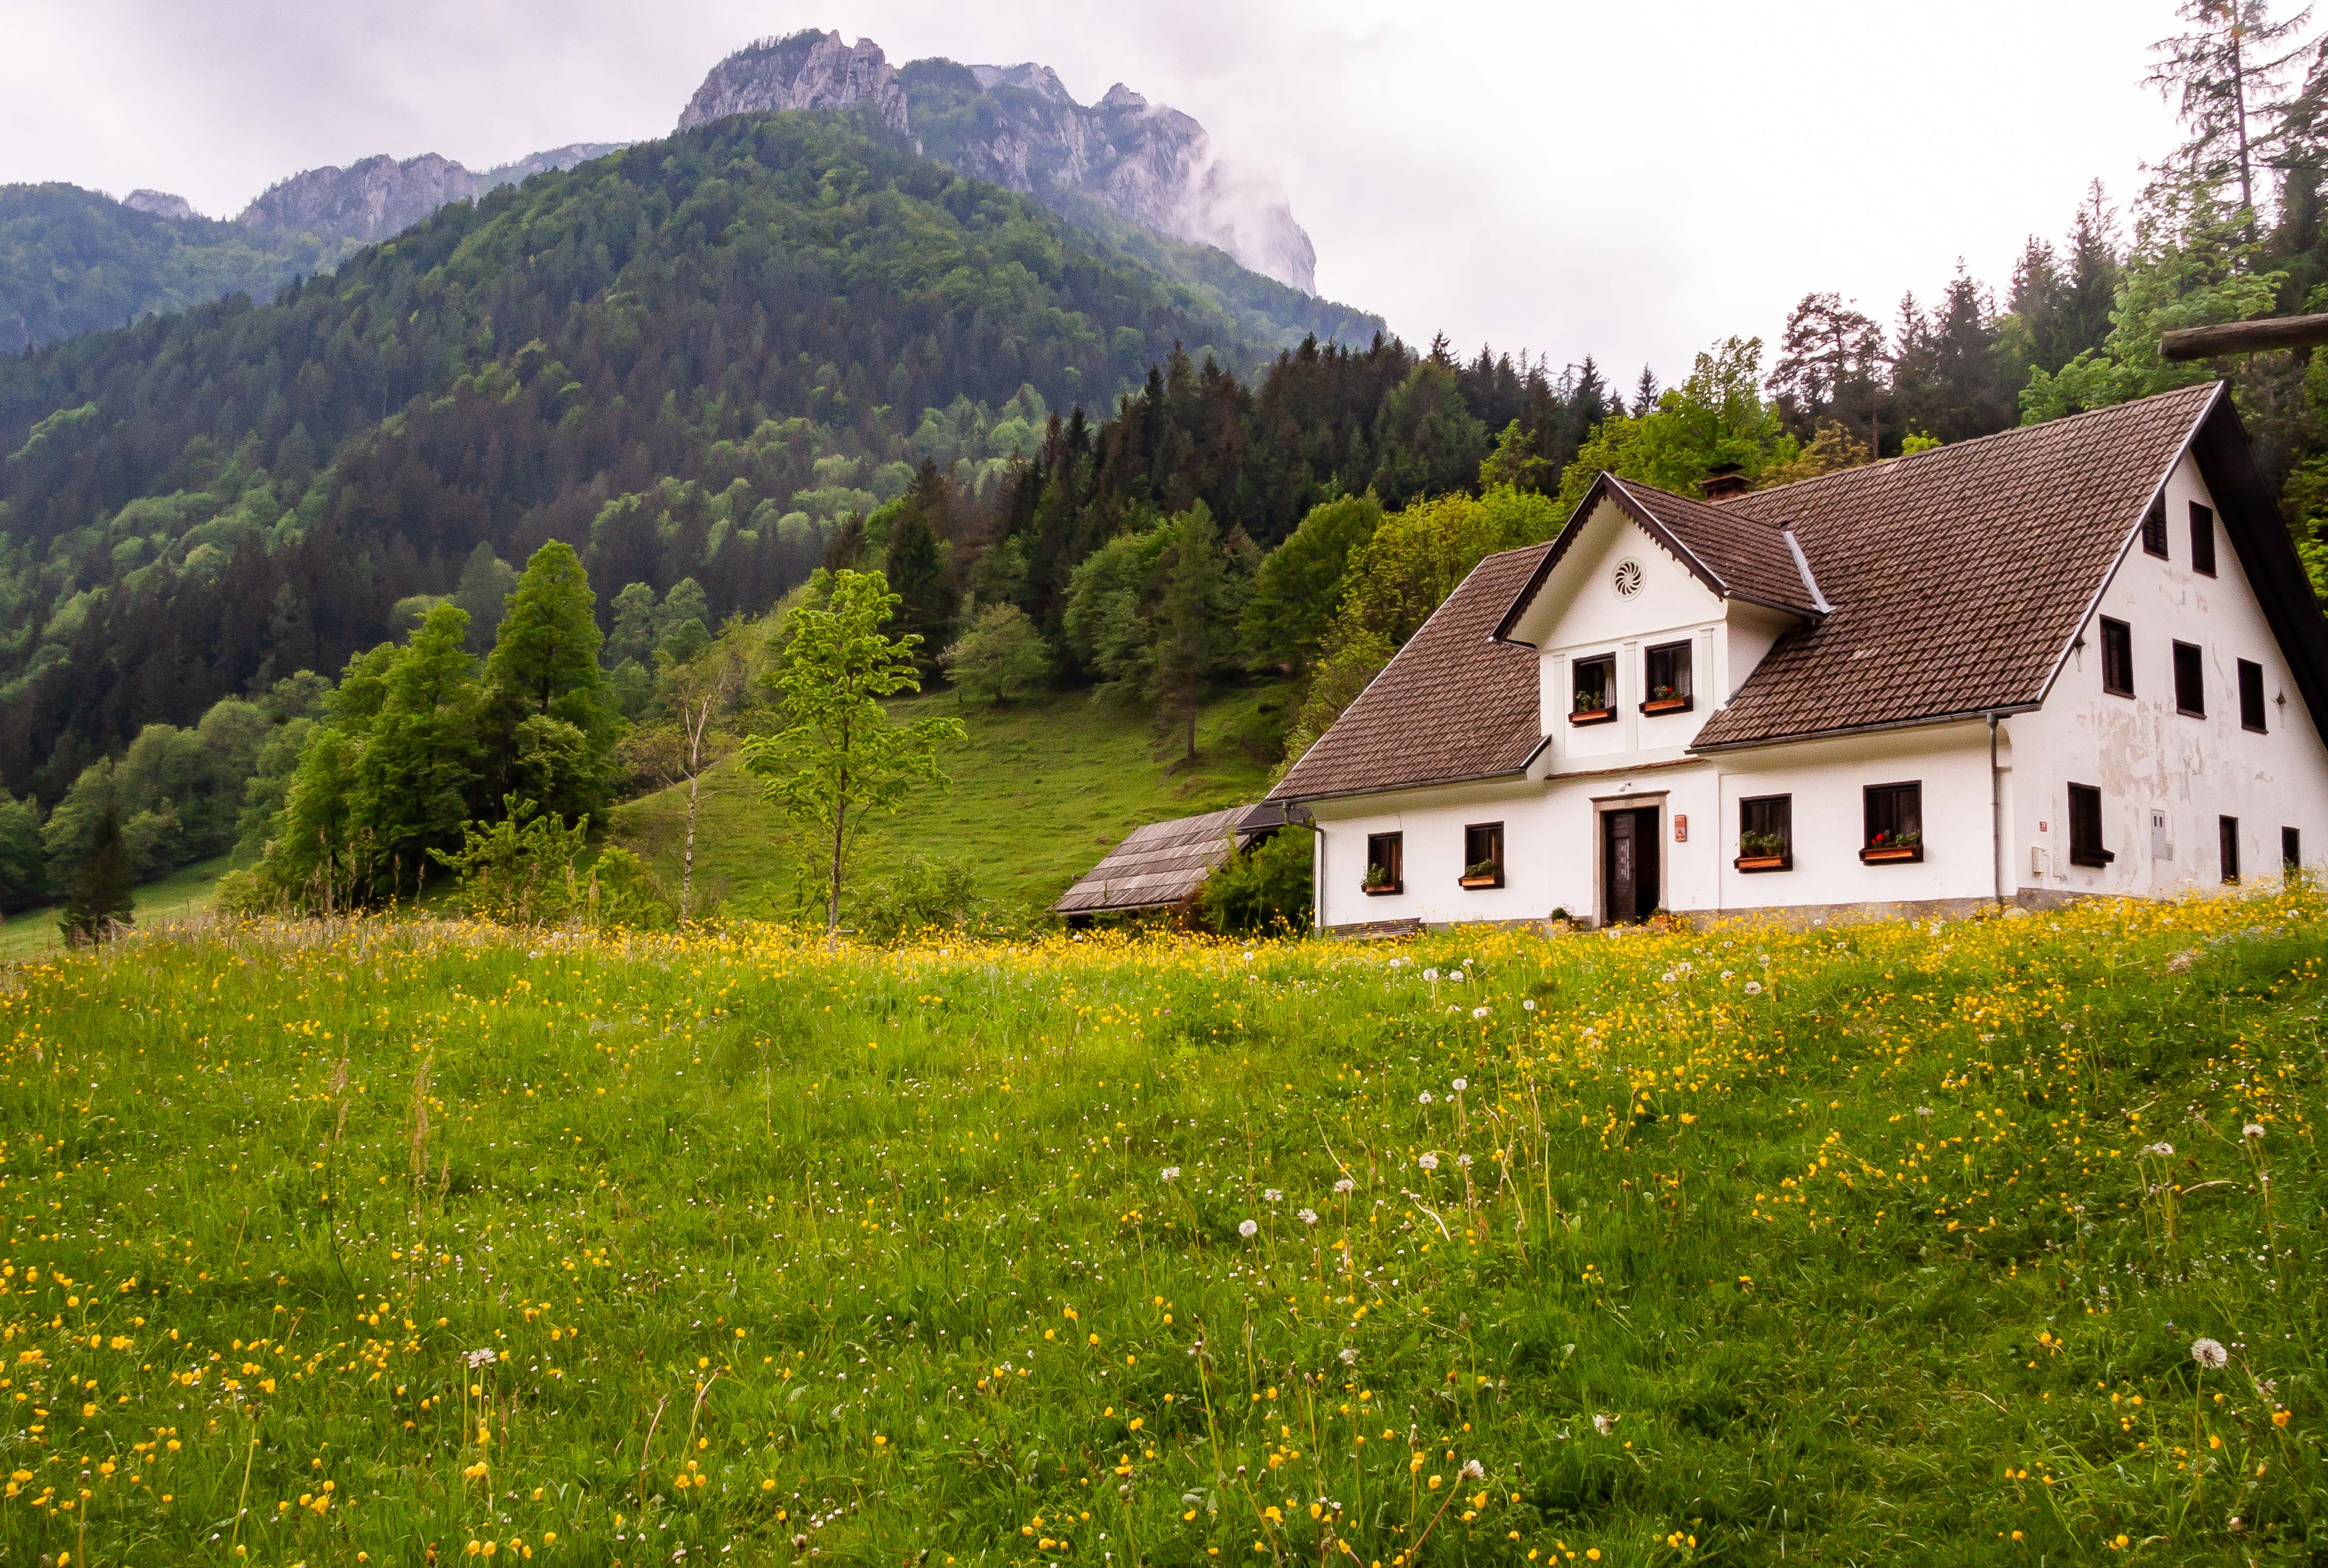 Slovenia, Solcava Prov, House And Mountain, 2006, IMG 8384